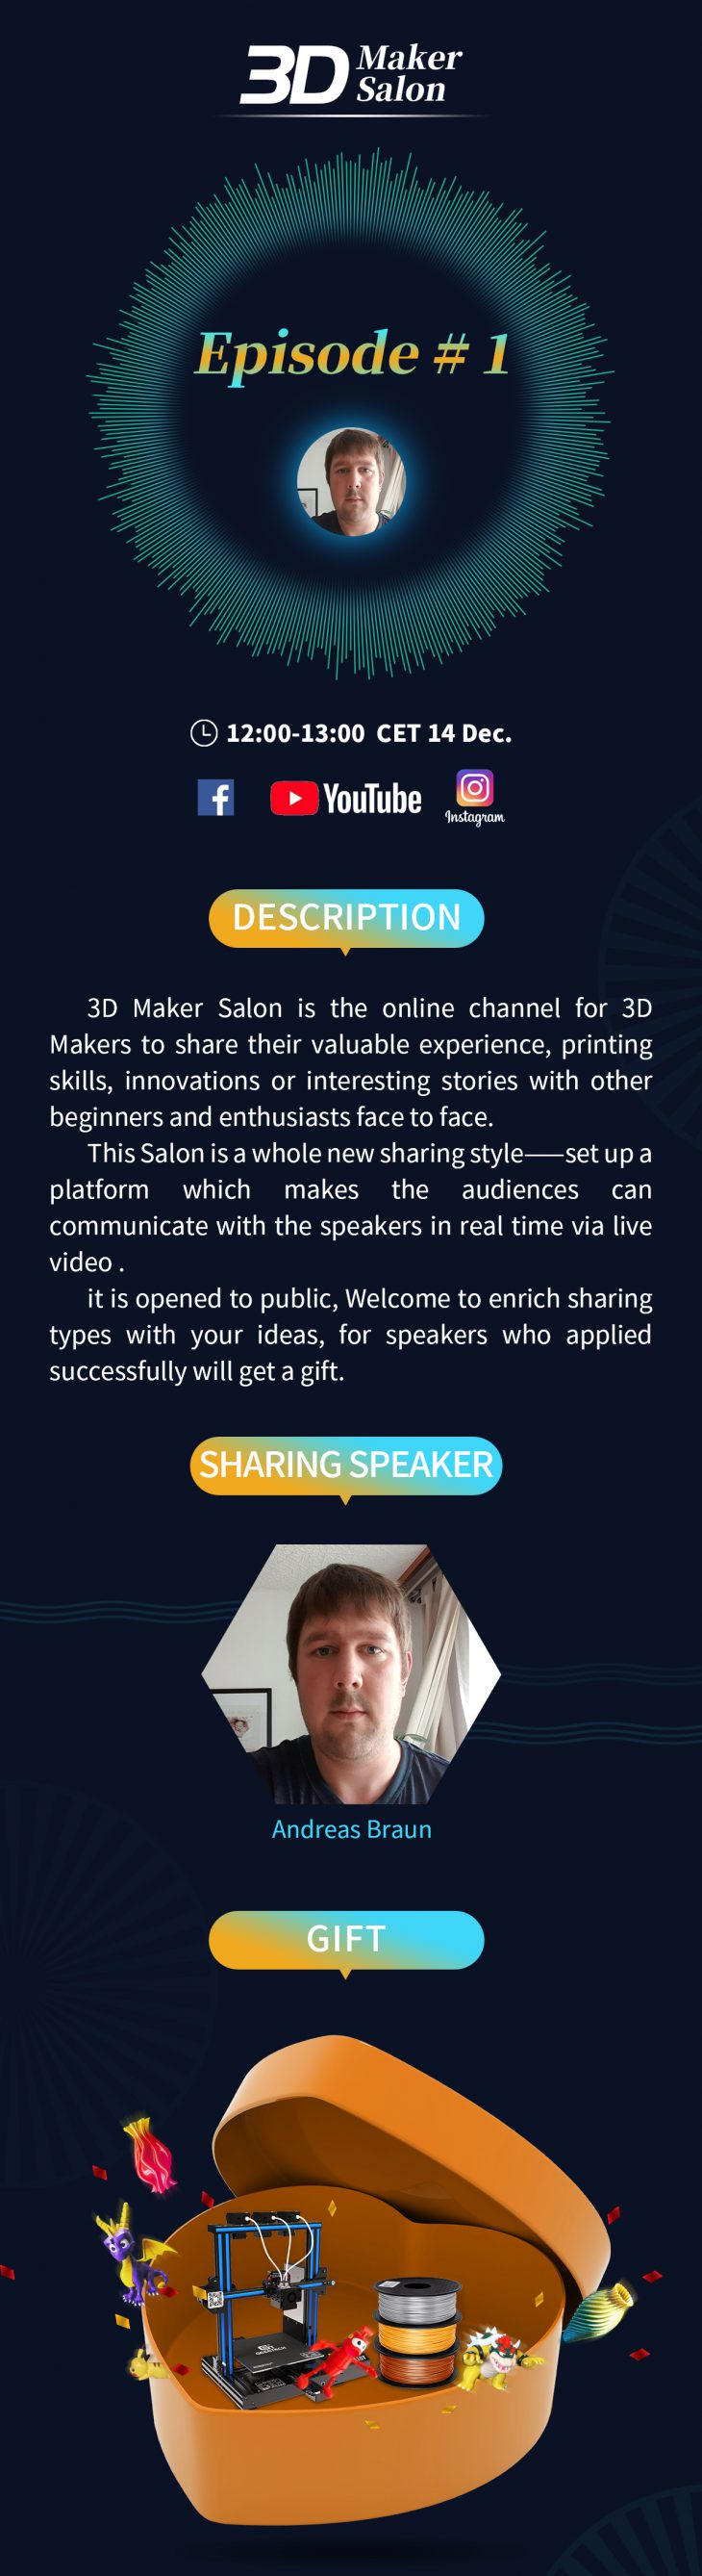 Episode 1 3D Maker Salon by Andreas Broun